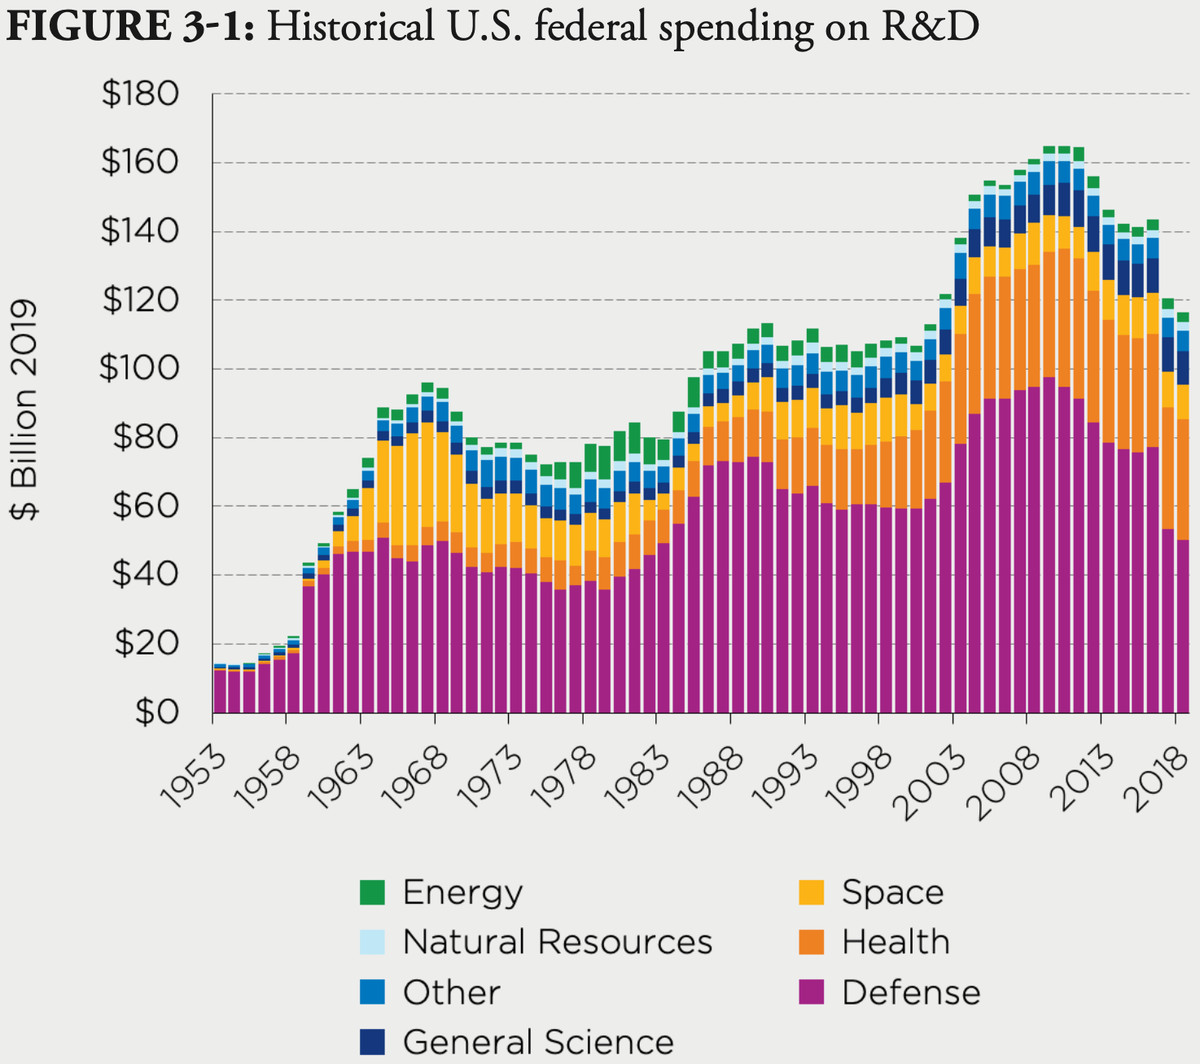 A chart showing historical US federal government spending on R&D. Spending on energy pales in comparison to spending on defense and health, for example.